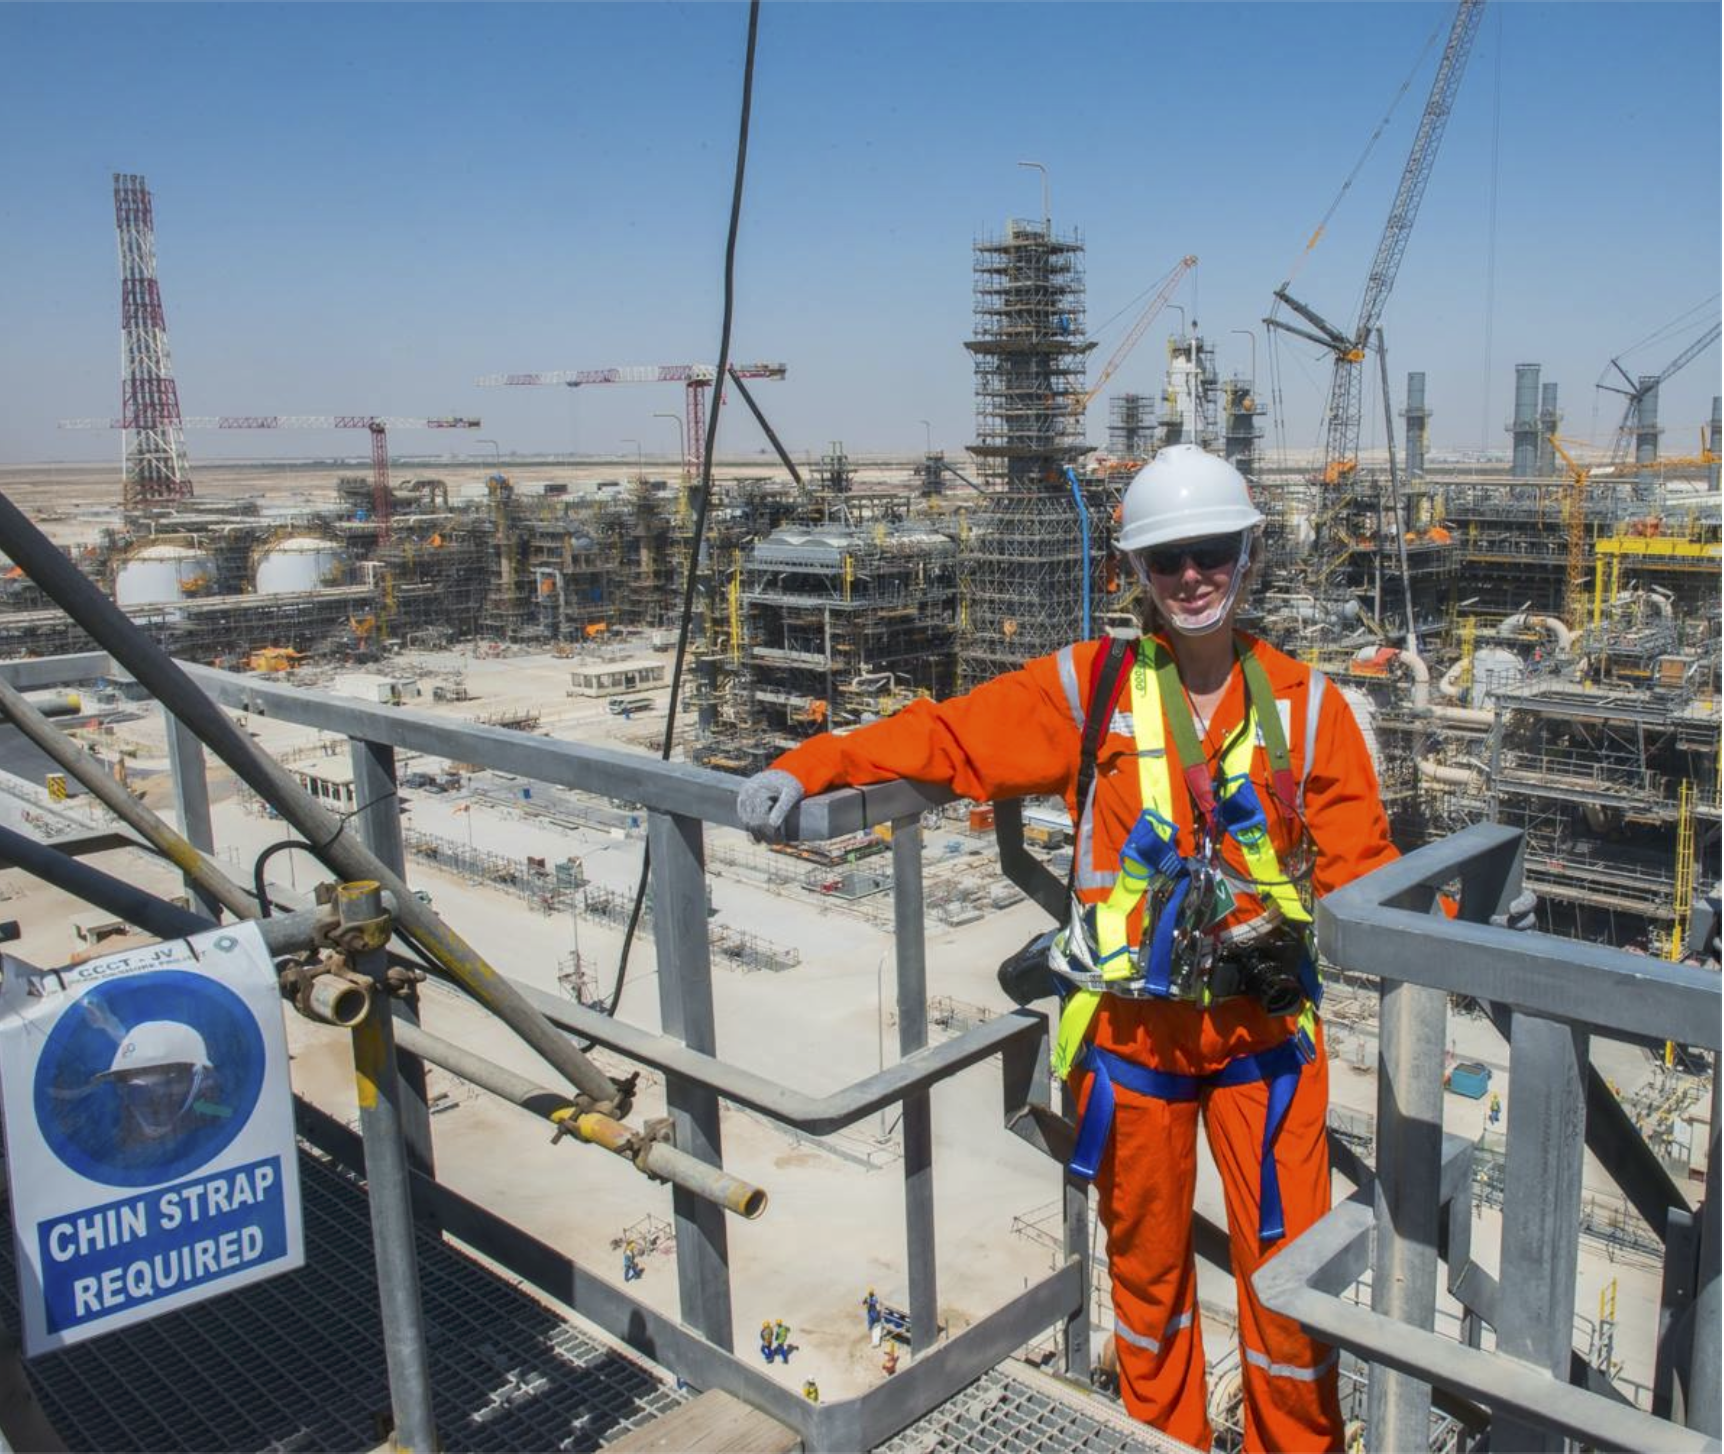 50 ºC (122 ºF) LNG plant under construction at Ras Laffan Industrial City in Qatar. More intense working conditions, and also fun!